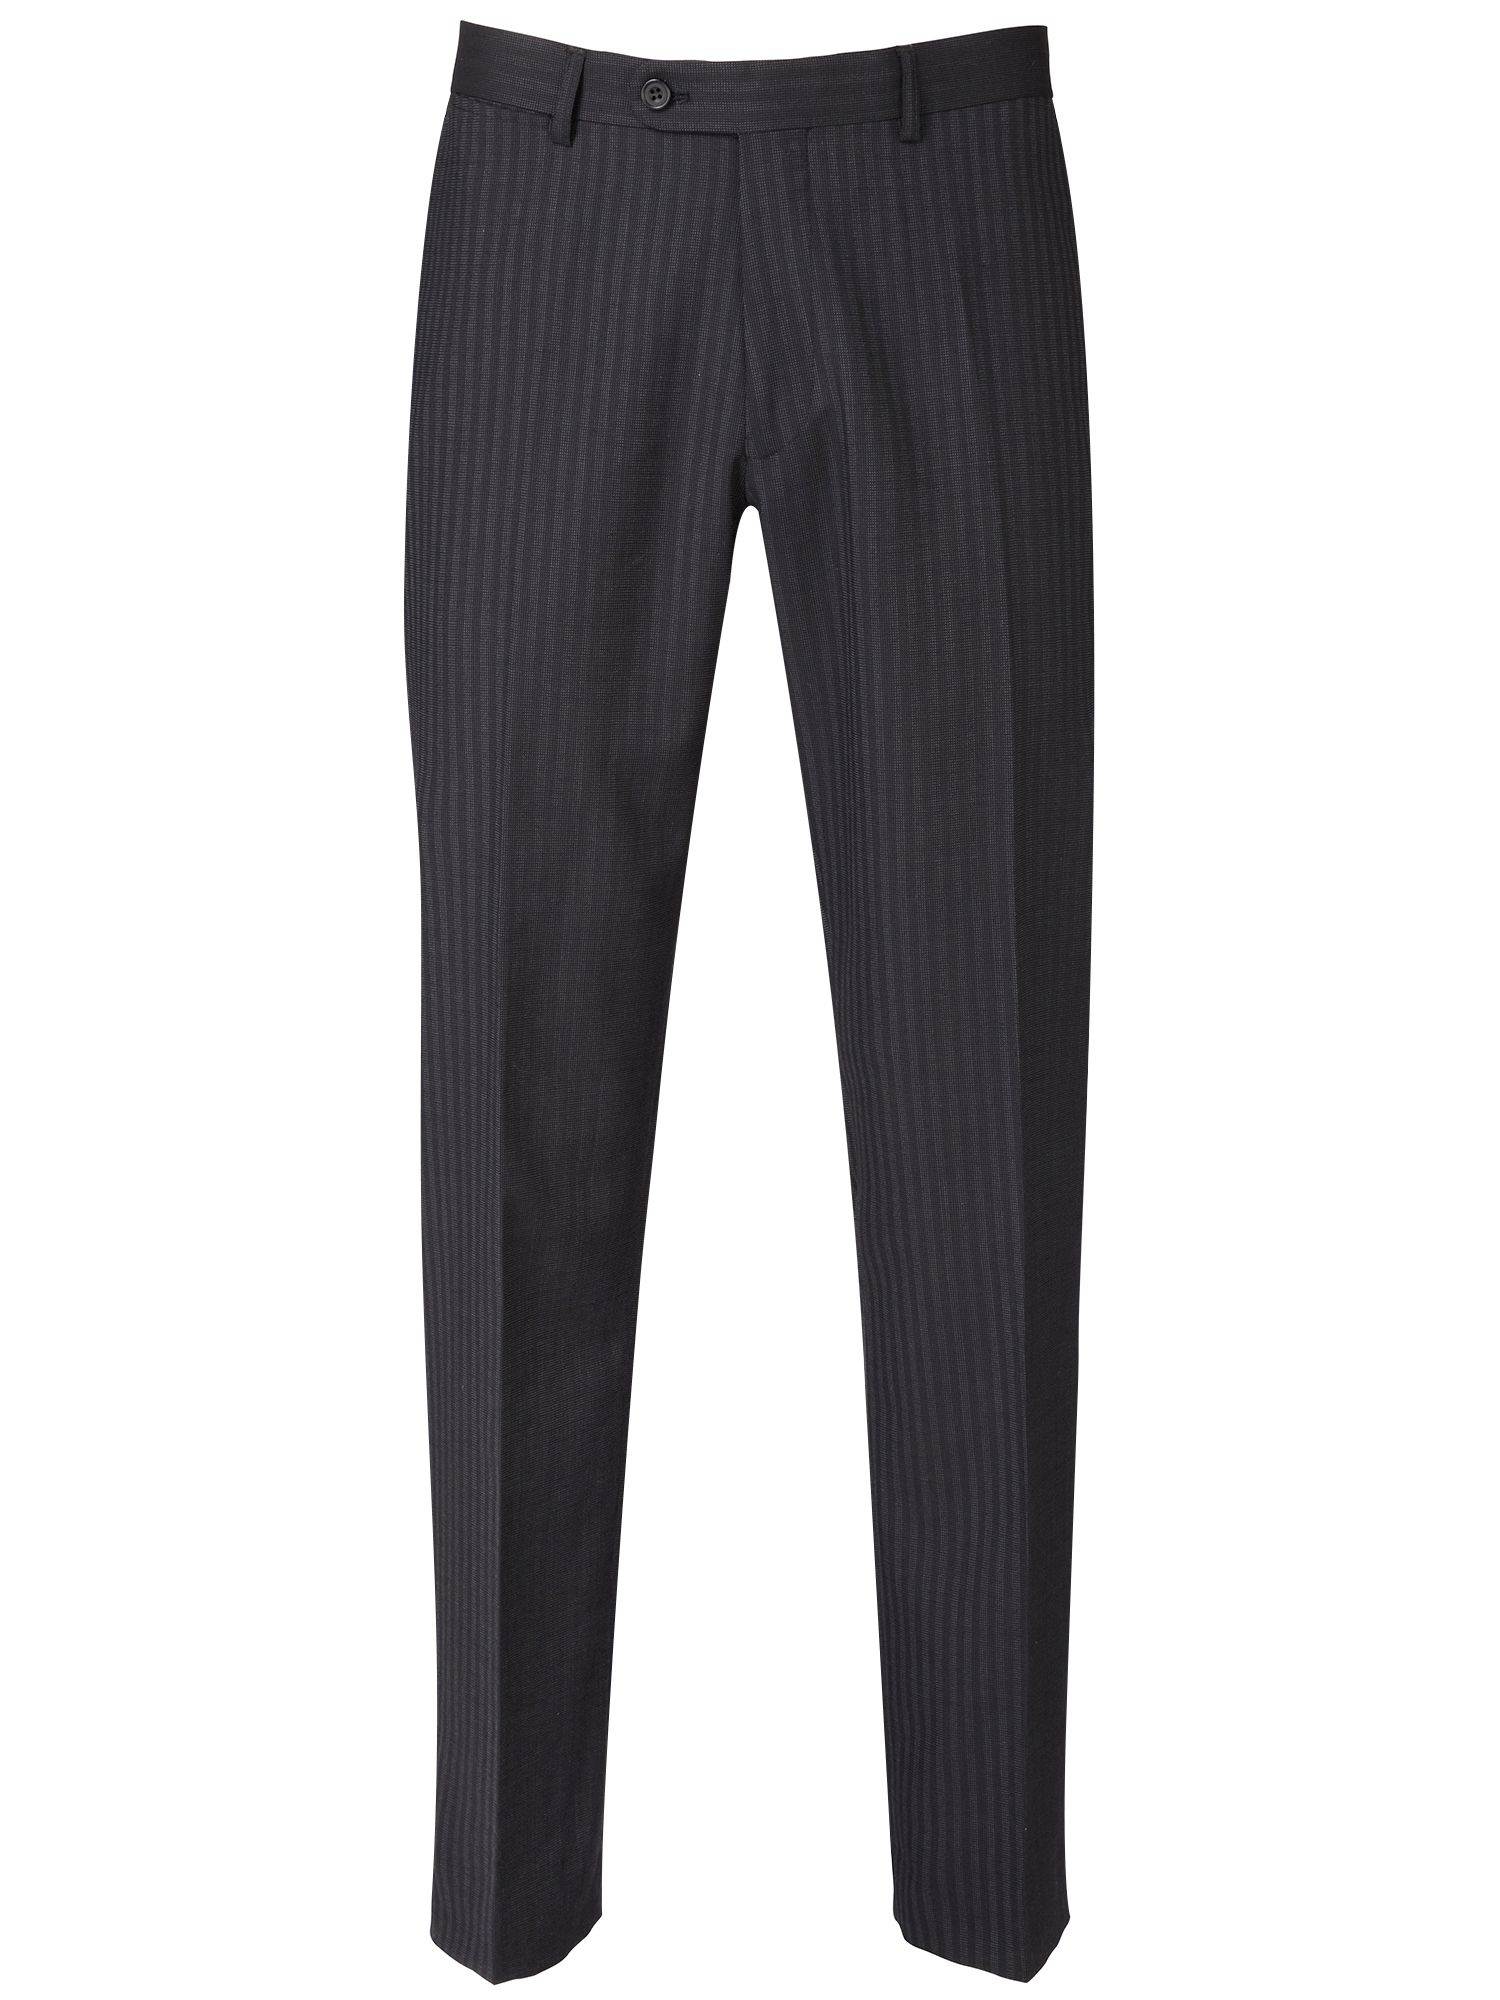 Farah suit trousers